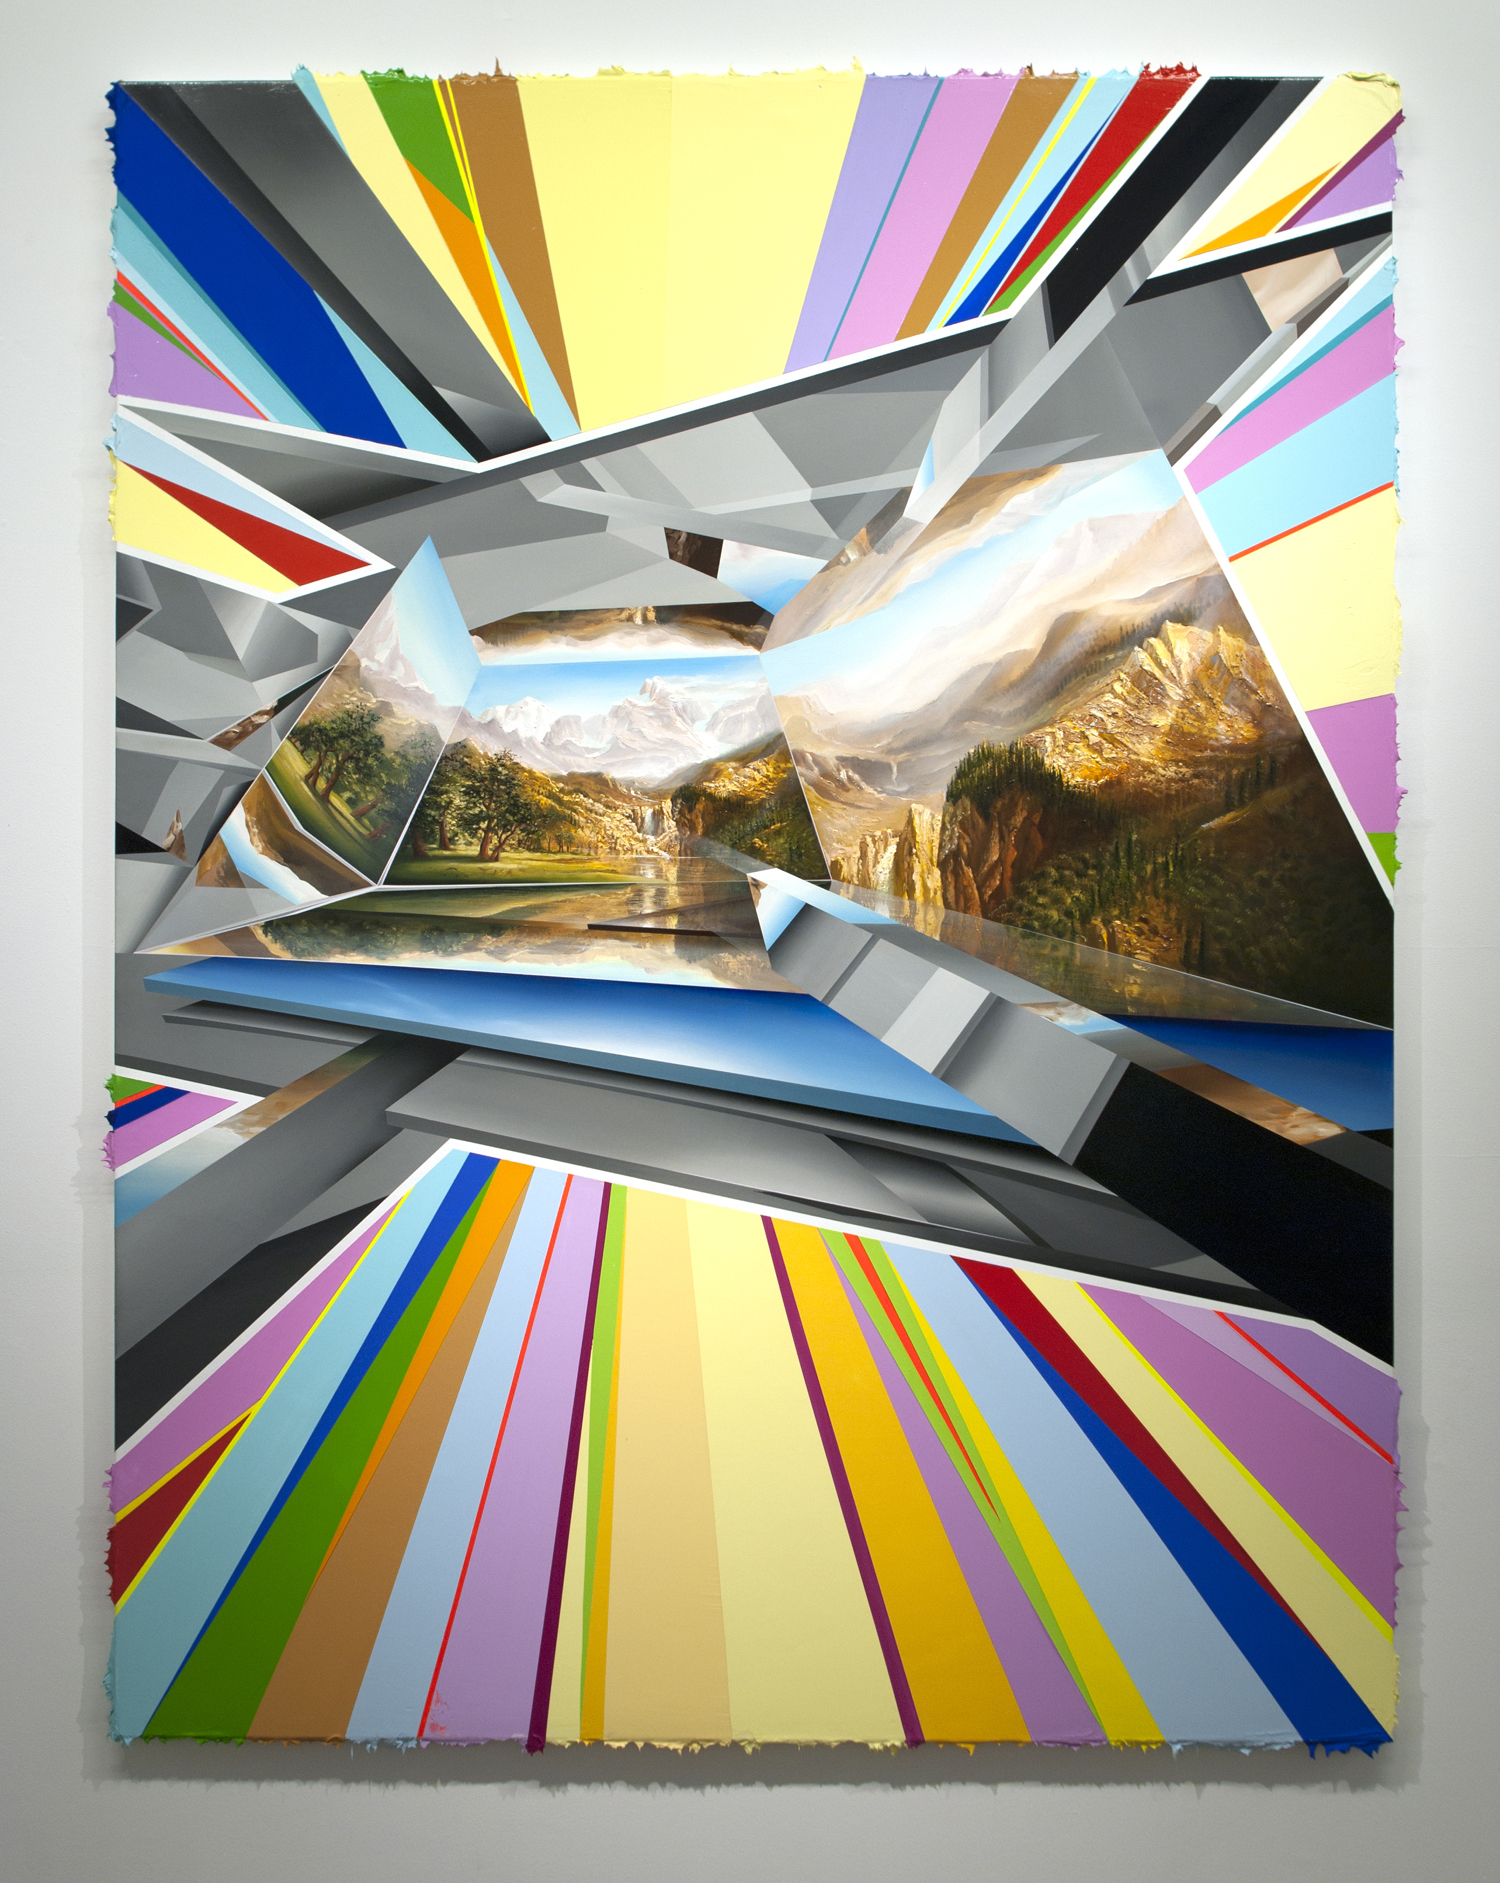 PETER DAVERINGTON     Somewhere Over the Rainbow  2013 Oil and acrylic on canvas 207 x 157 cm